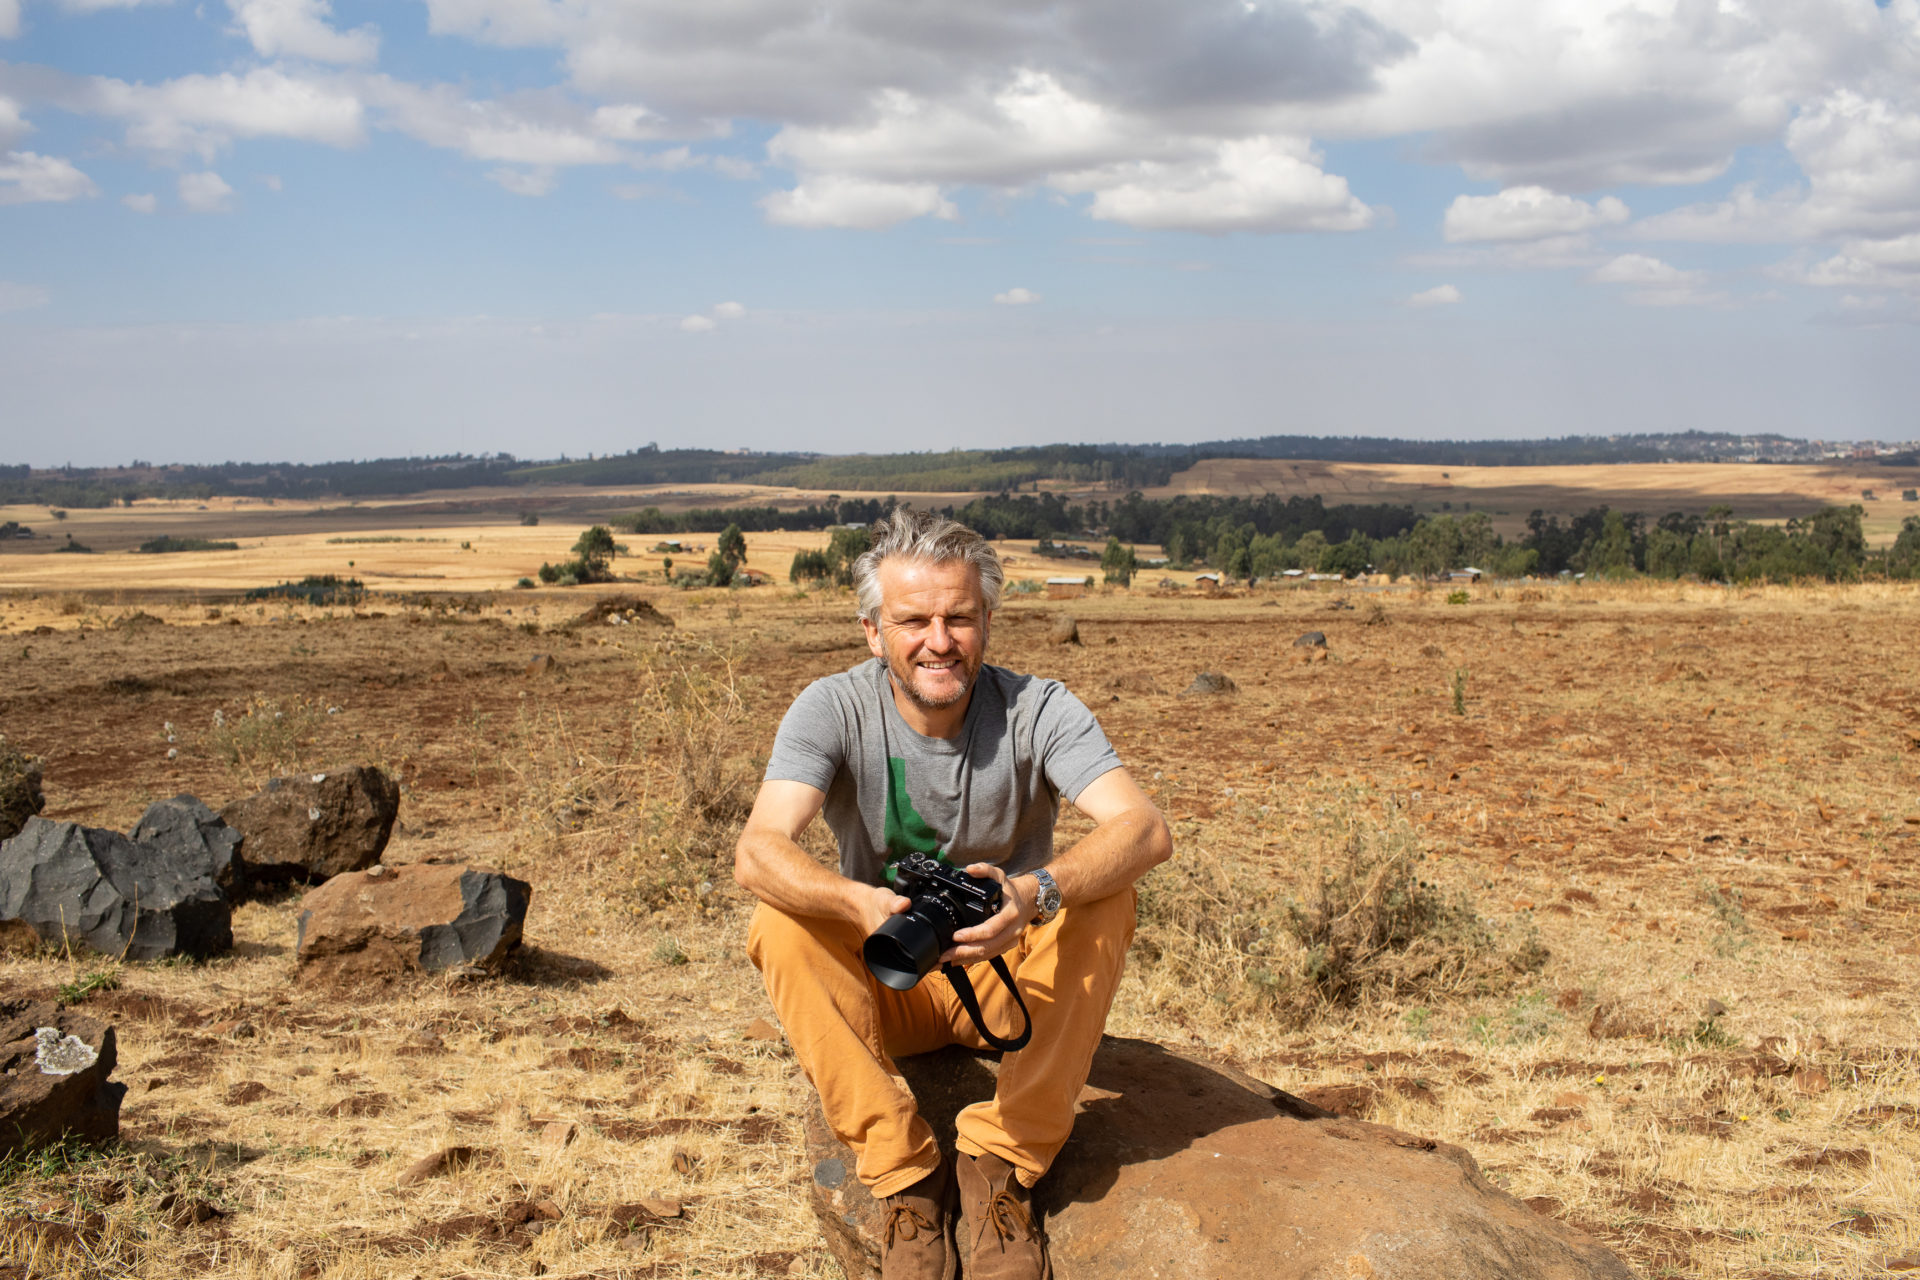 Simon Scott sitting in Africa